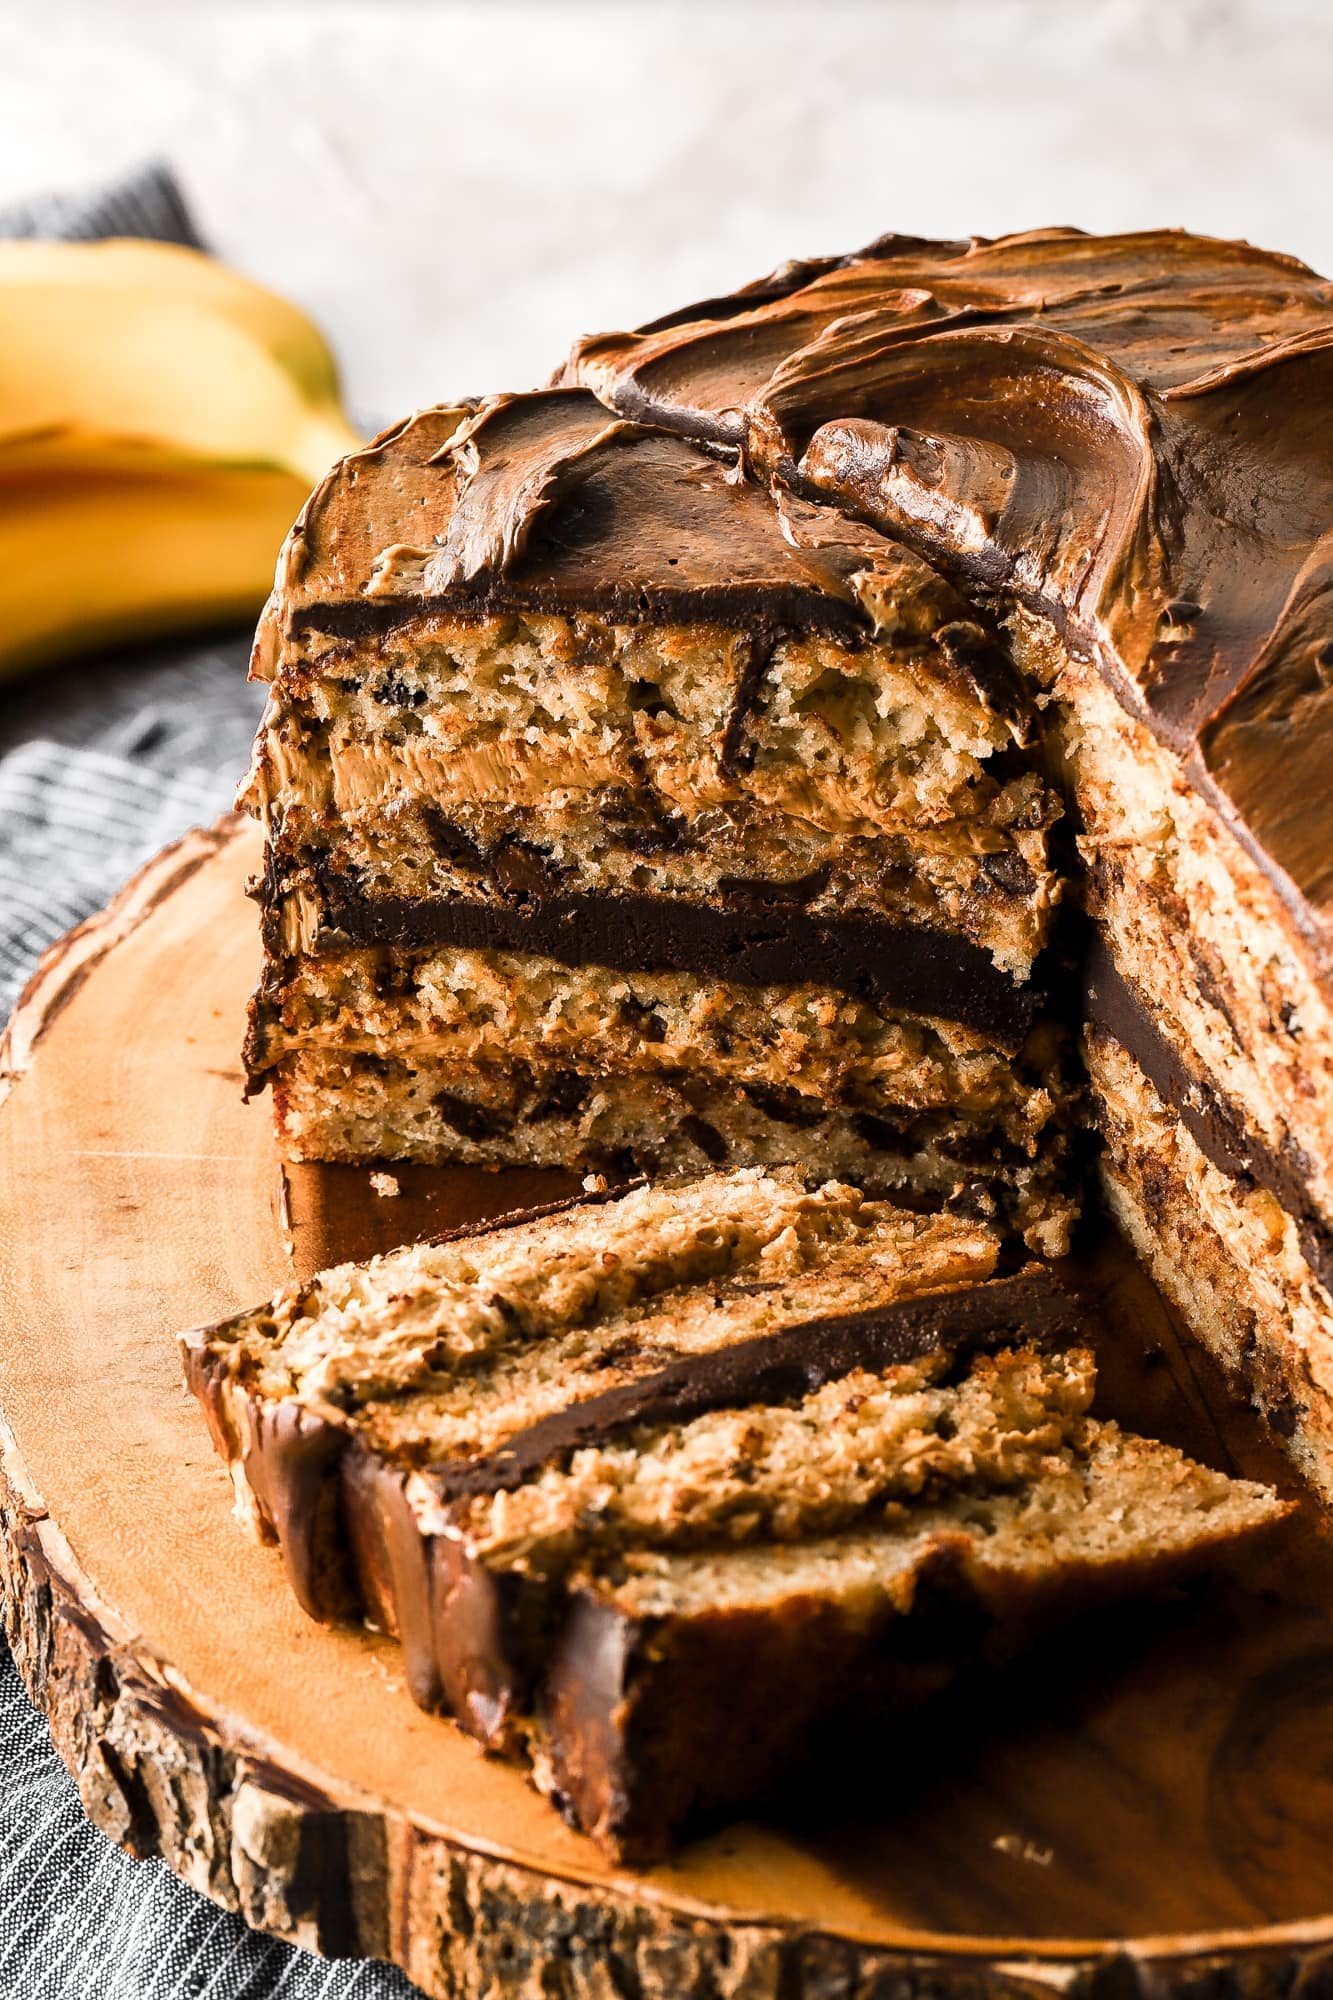 peanut butter banana chocolate chip cake with cut slice